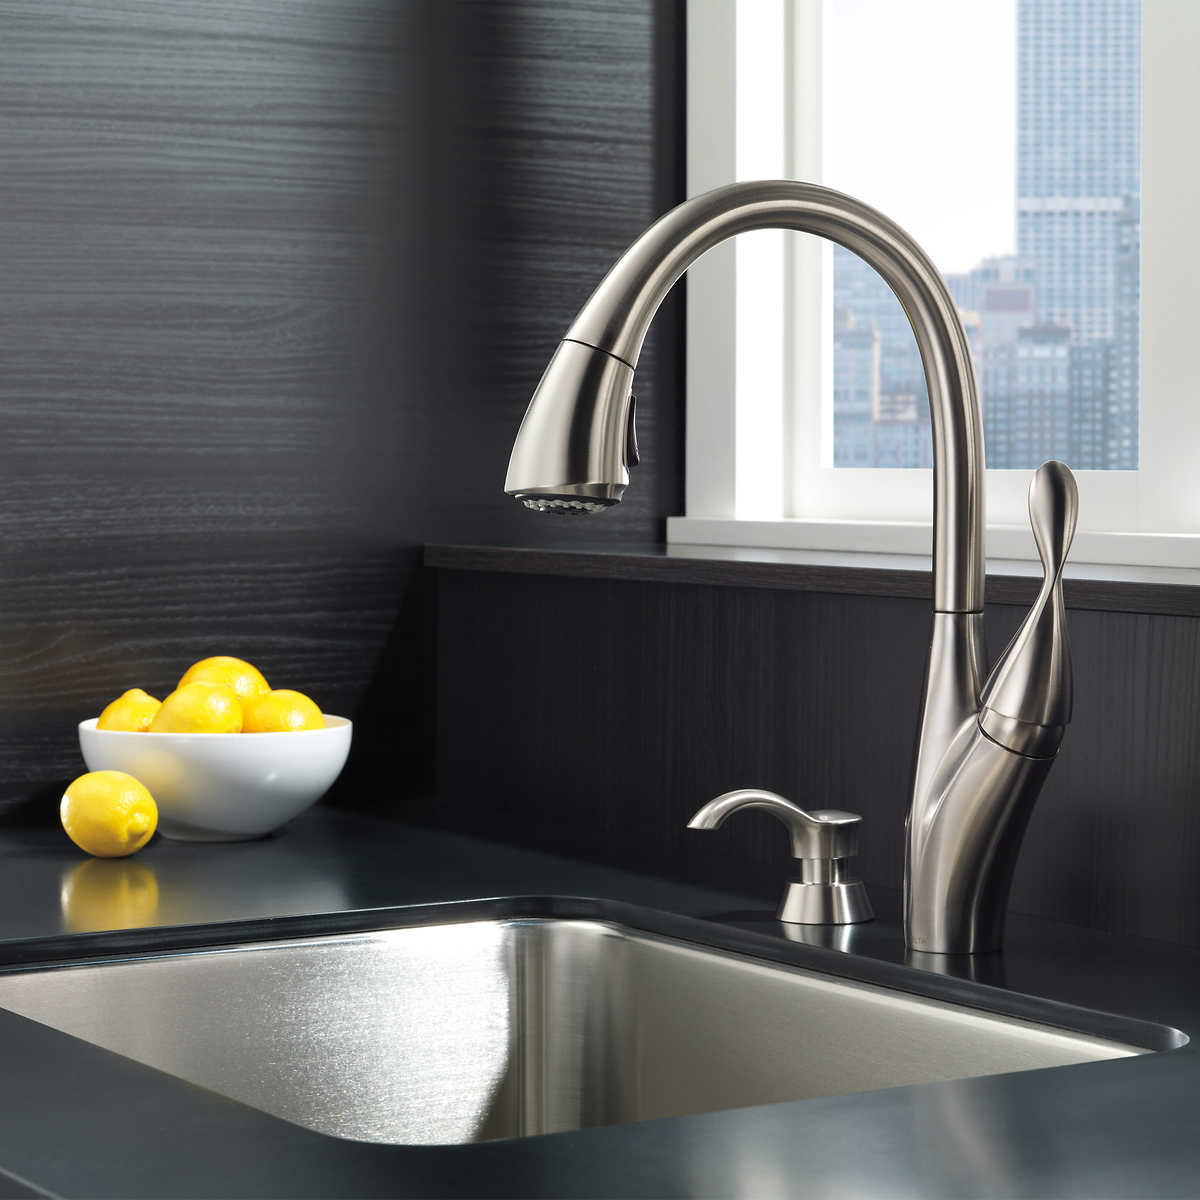 Delta Berkley Pulldown Kitchen Faucet And Soap Dispenser